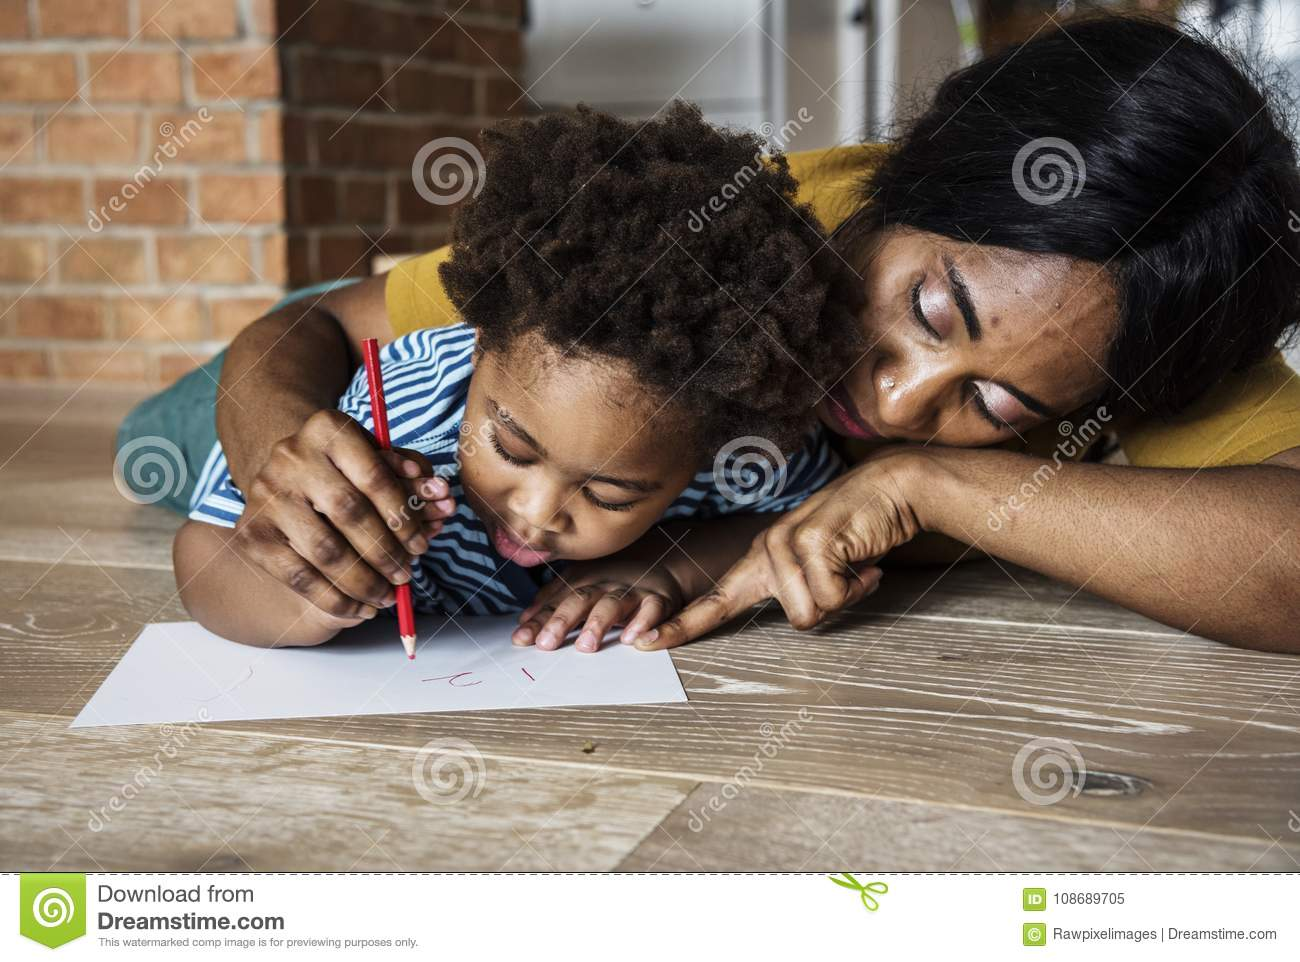 Mom teaching son how to drawing